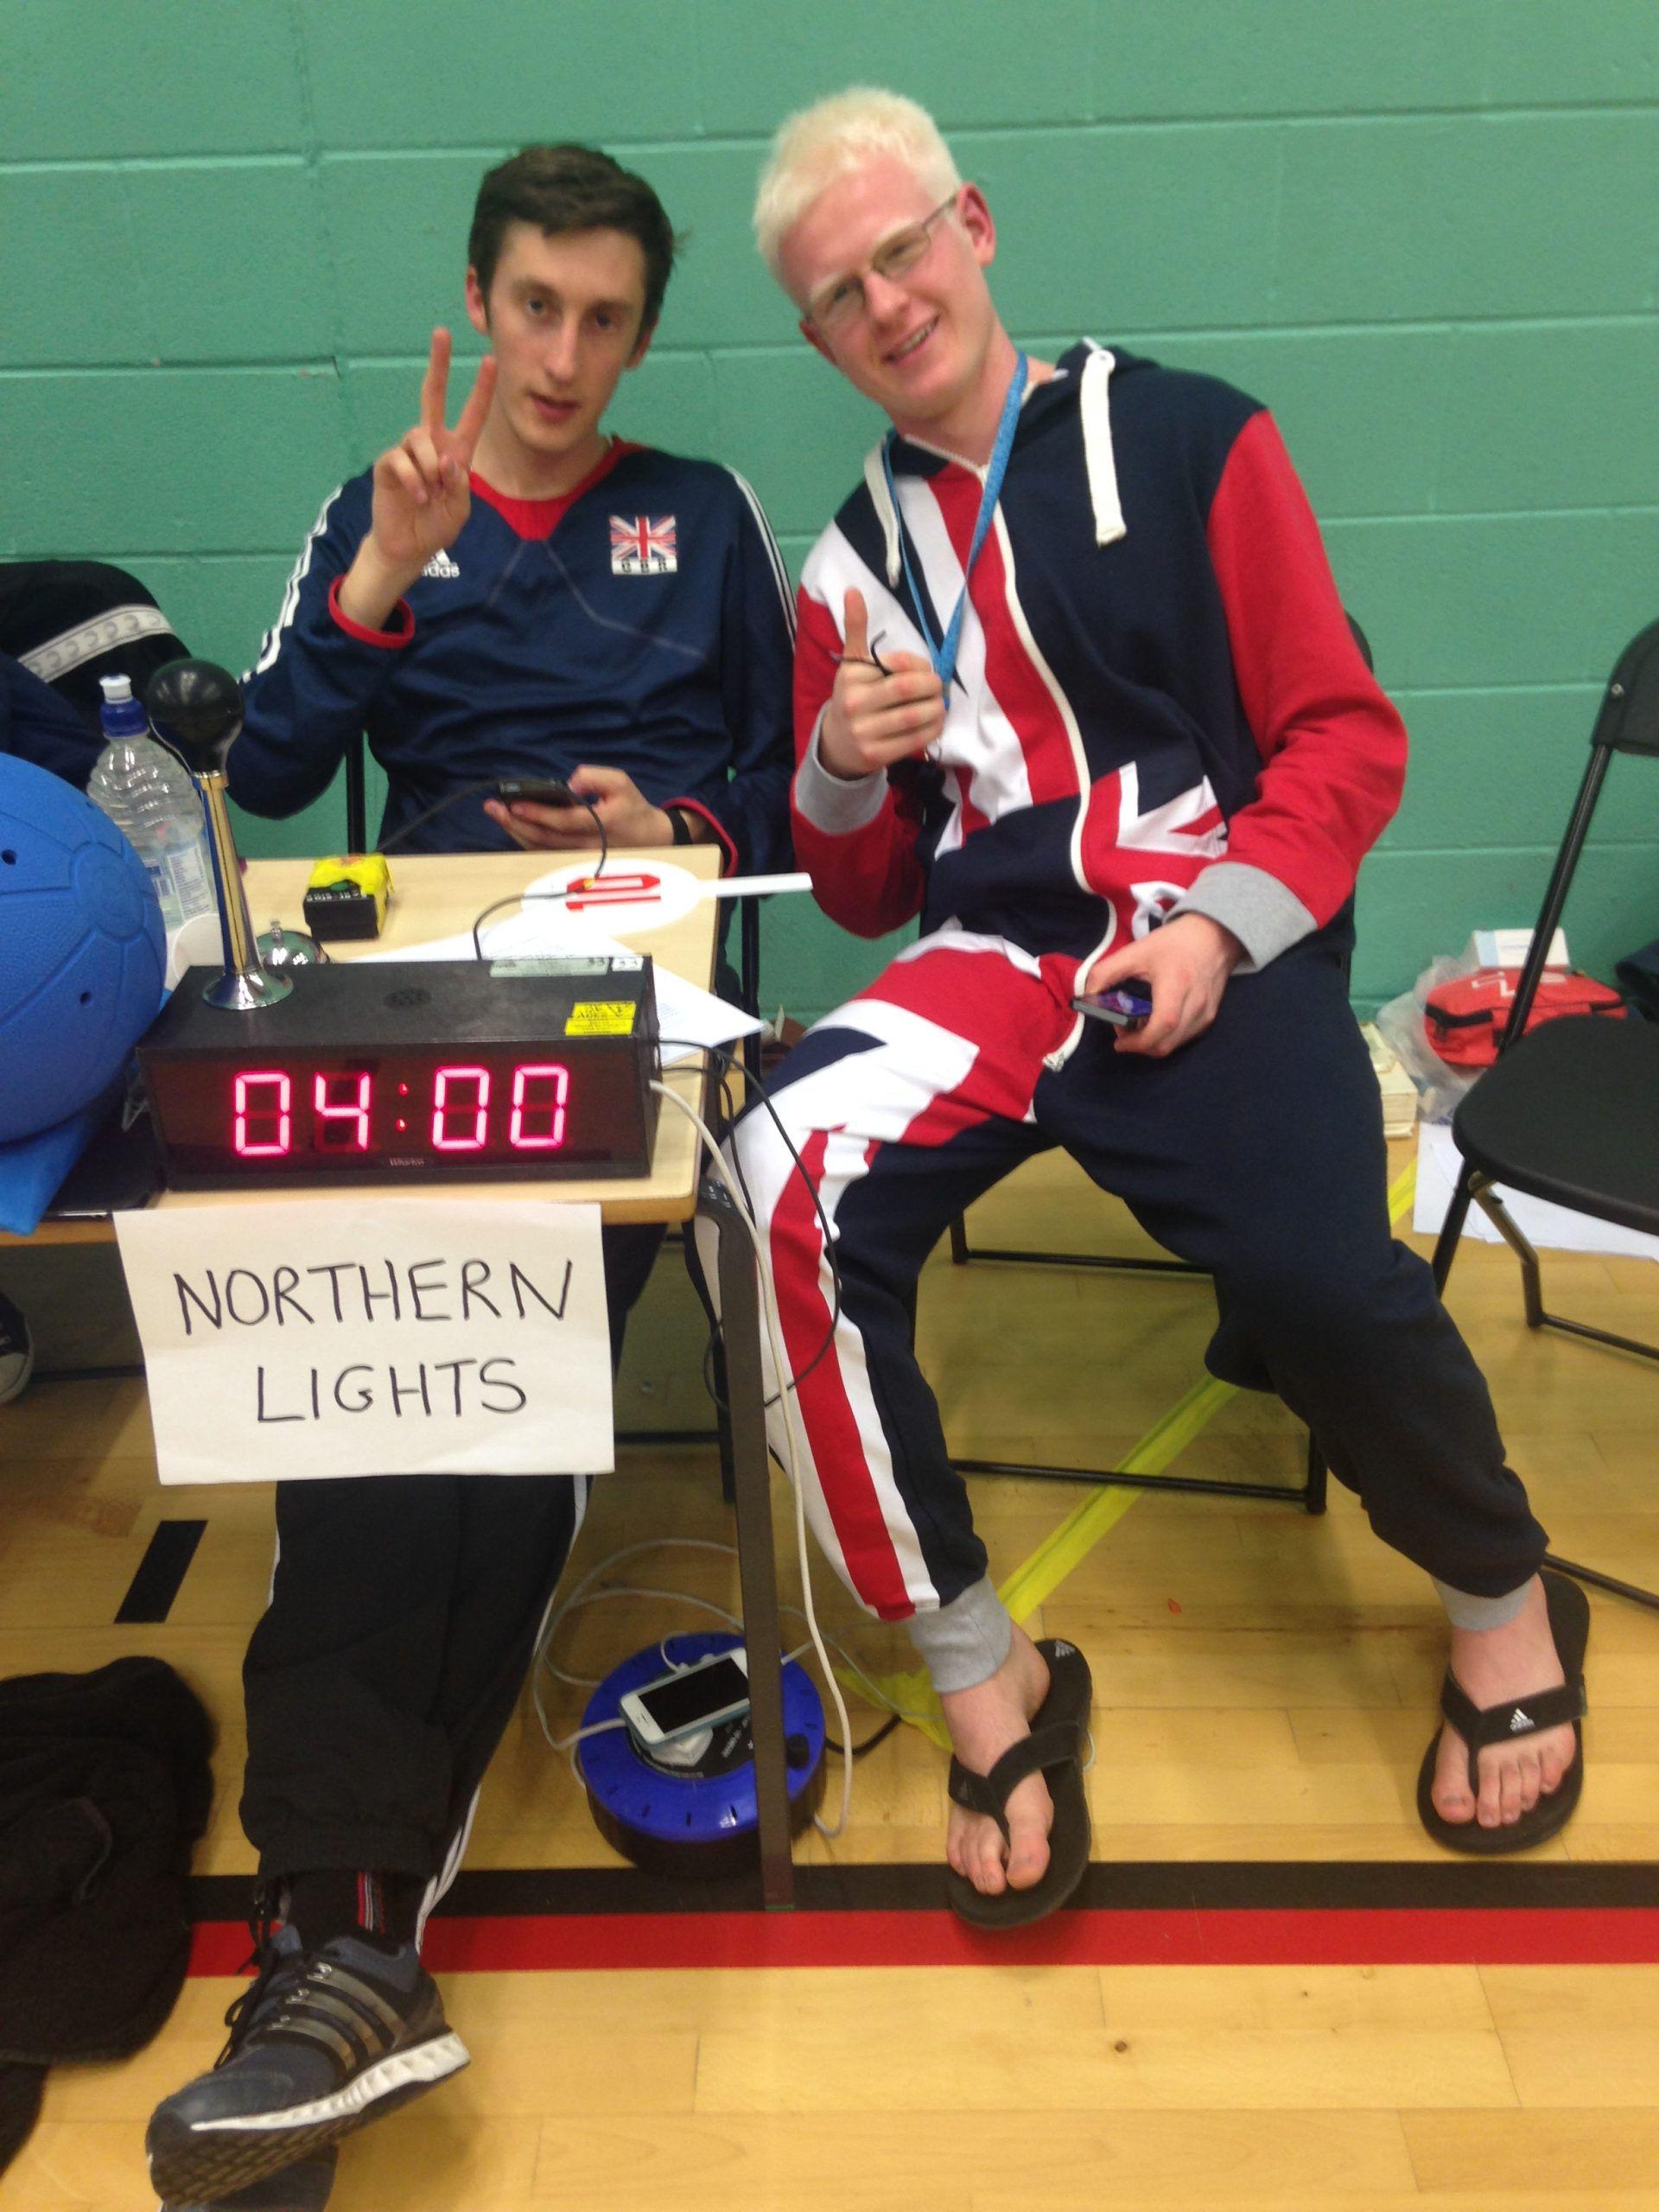 Alex Bunney and Adam Knott posing behind the officials table with Adam wearing a union jack one piece